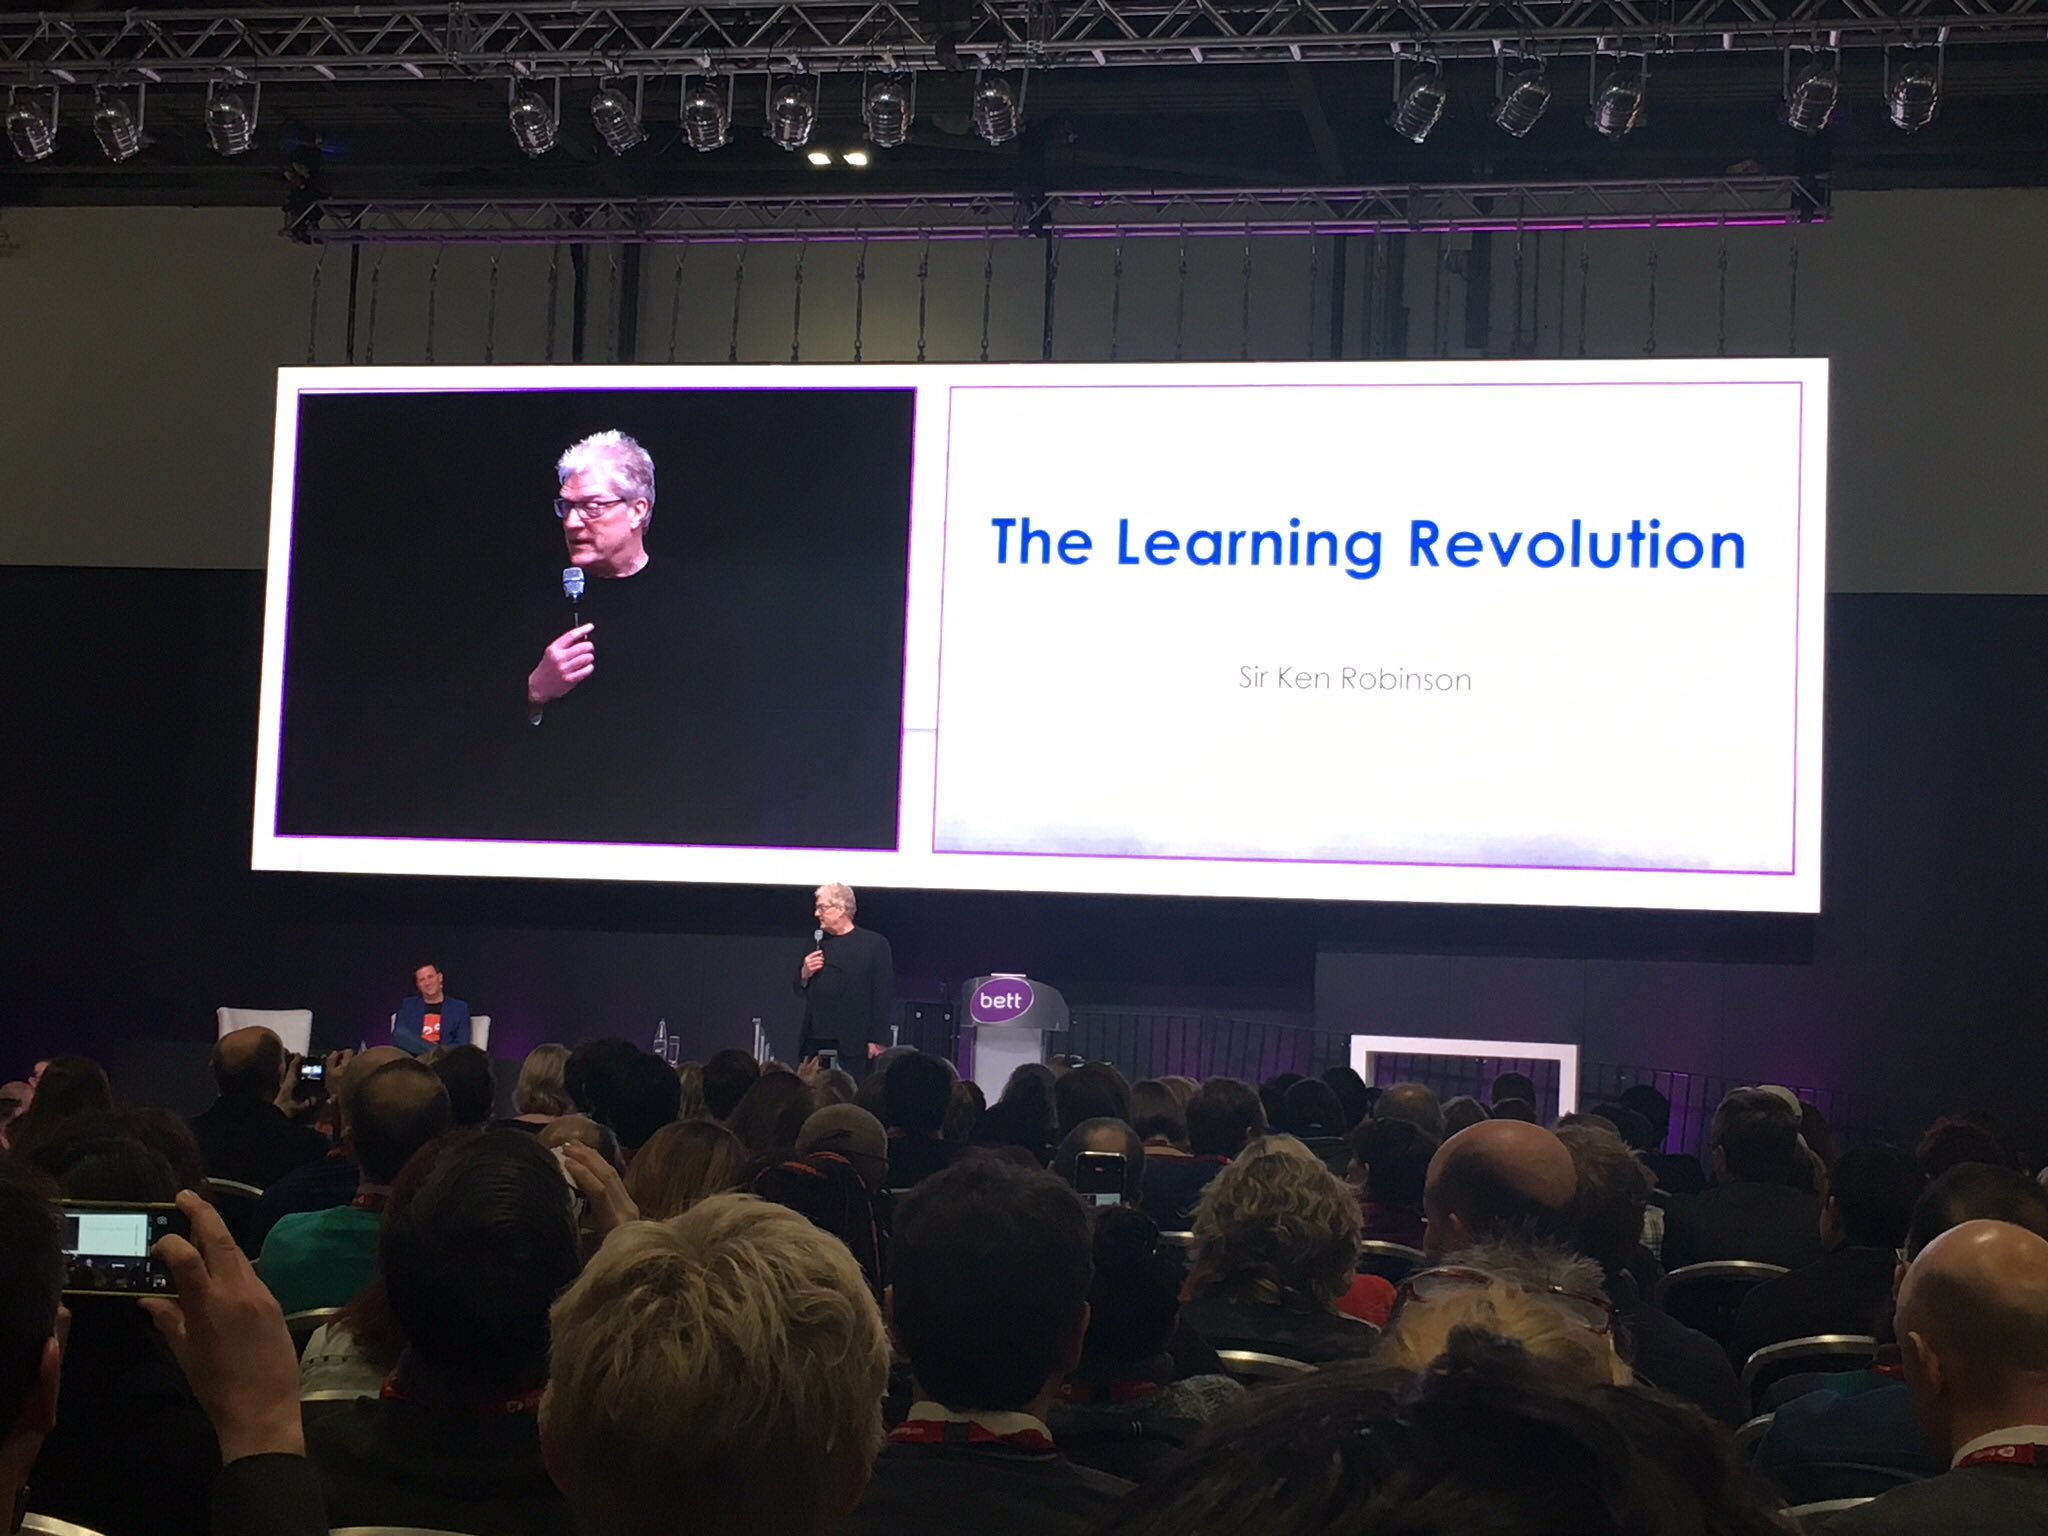 Enjoyed listening to @SirKenRobinson at #Bett2017 - entertaining & thought provoking #myWAB https://t.co/AWwoHDX1uL